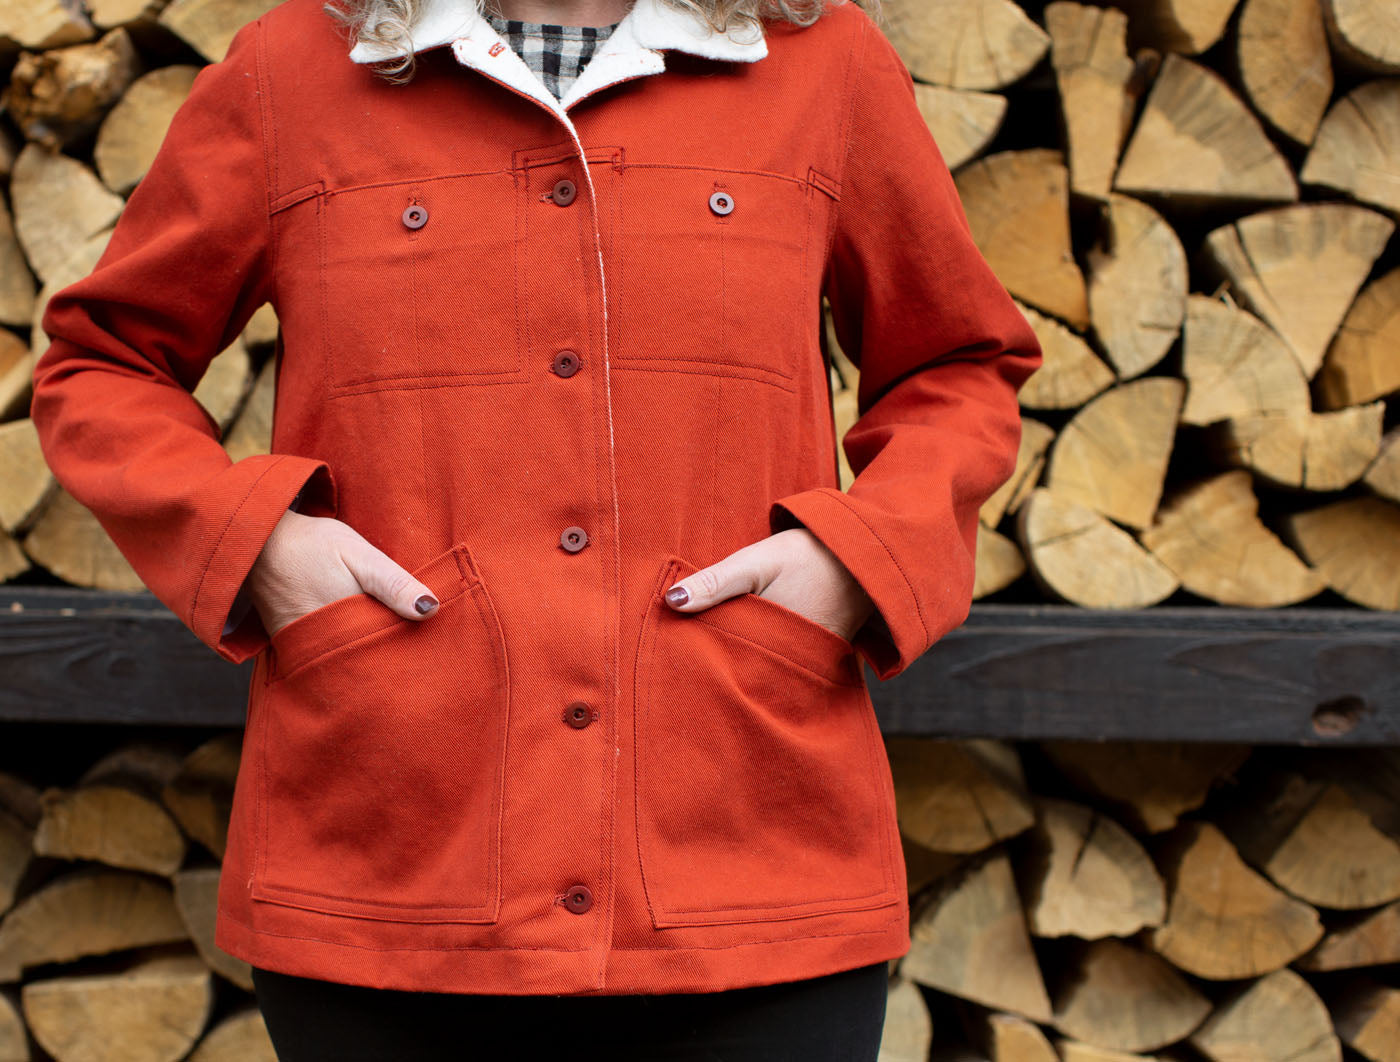 Close up photo of the torso of someone wearing a fiery orange jacket with a white fleece-lined collar. Their hands are in the pockets and they stand in front of a neatly stacked wall of firewood.